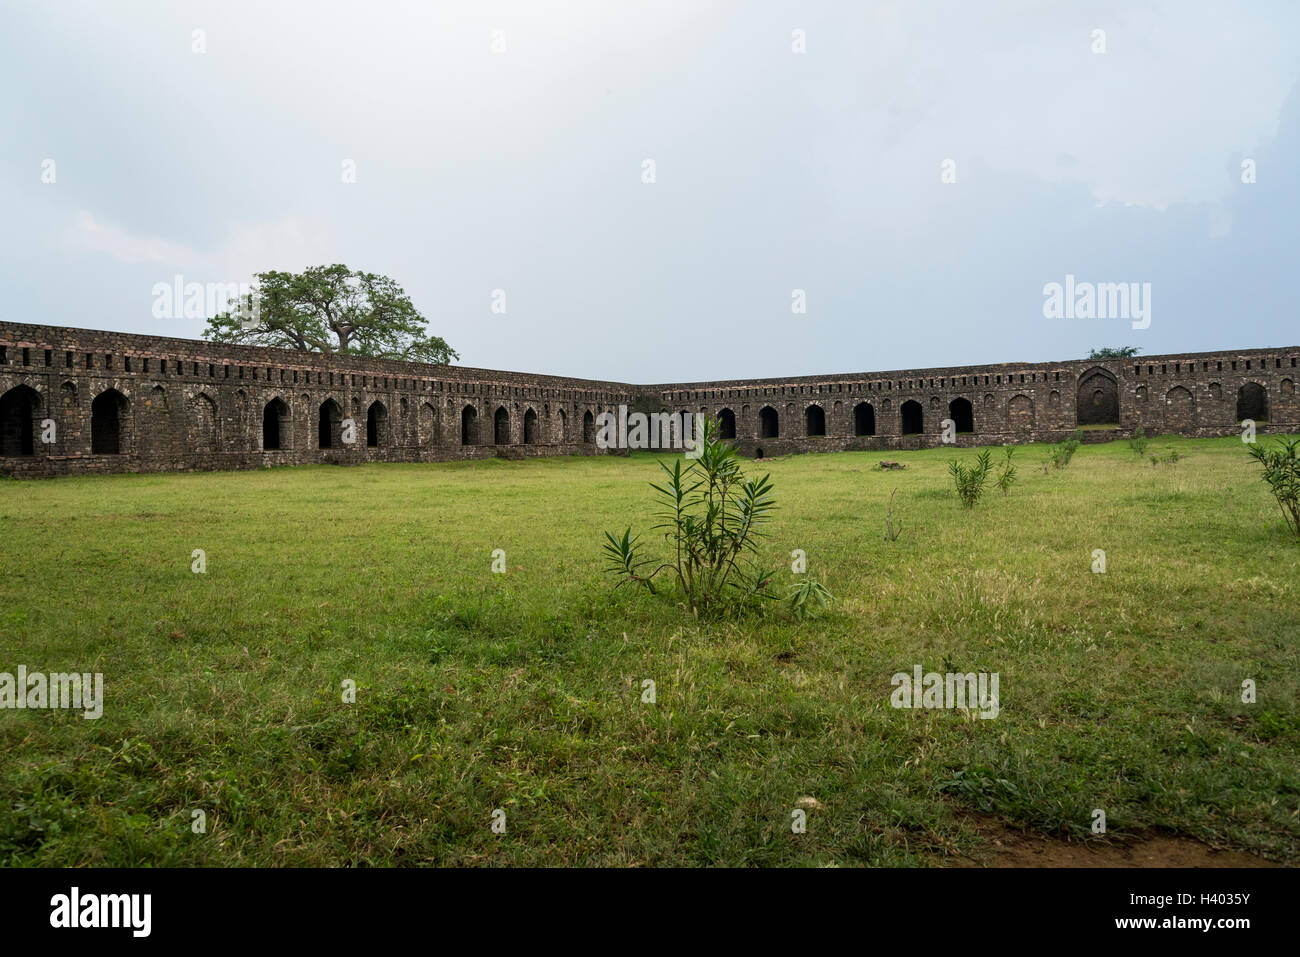 'Carvan-Sarai', built in 1437 AD is a large inn comprising an extensive court resembling the medieval inns - Stock Image